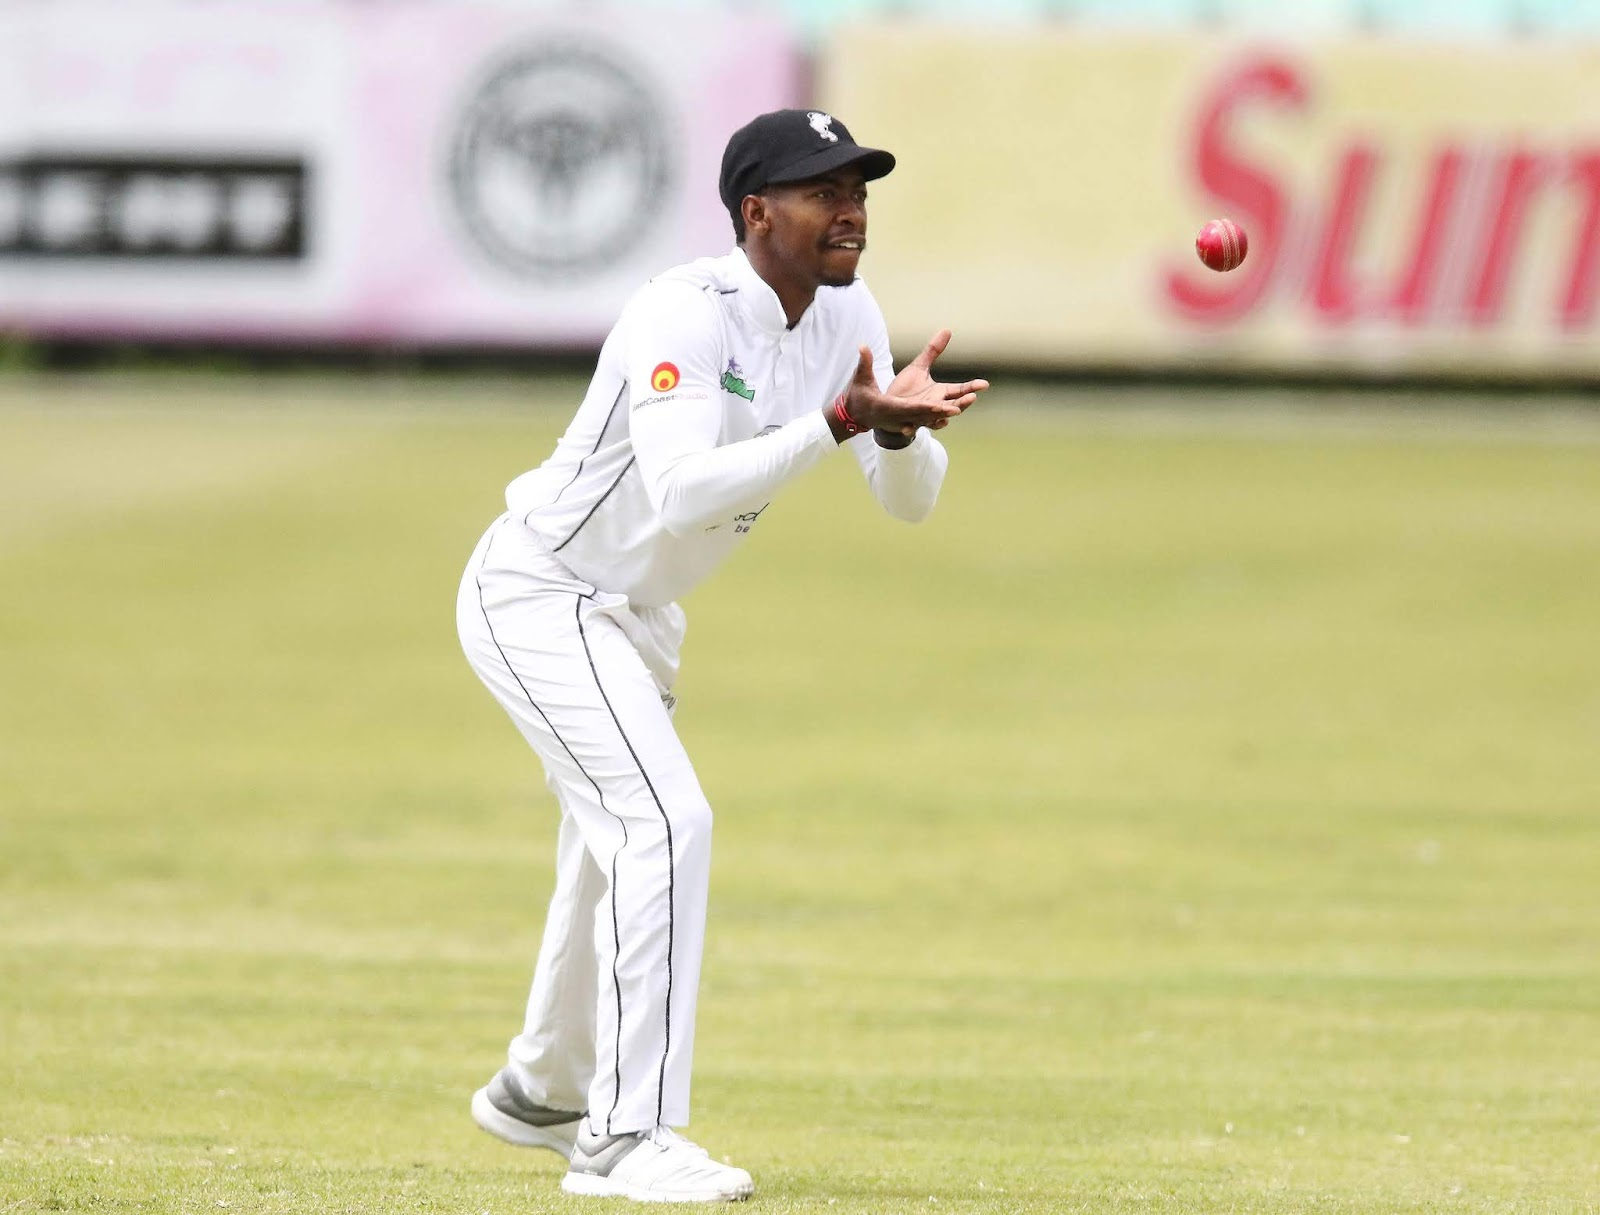 Sibonelo Makhanya - Hollywoodbets Dolphins - Cricket - 4 Day Franchise Series